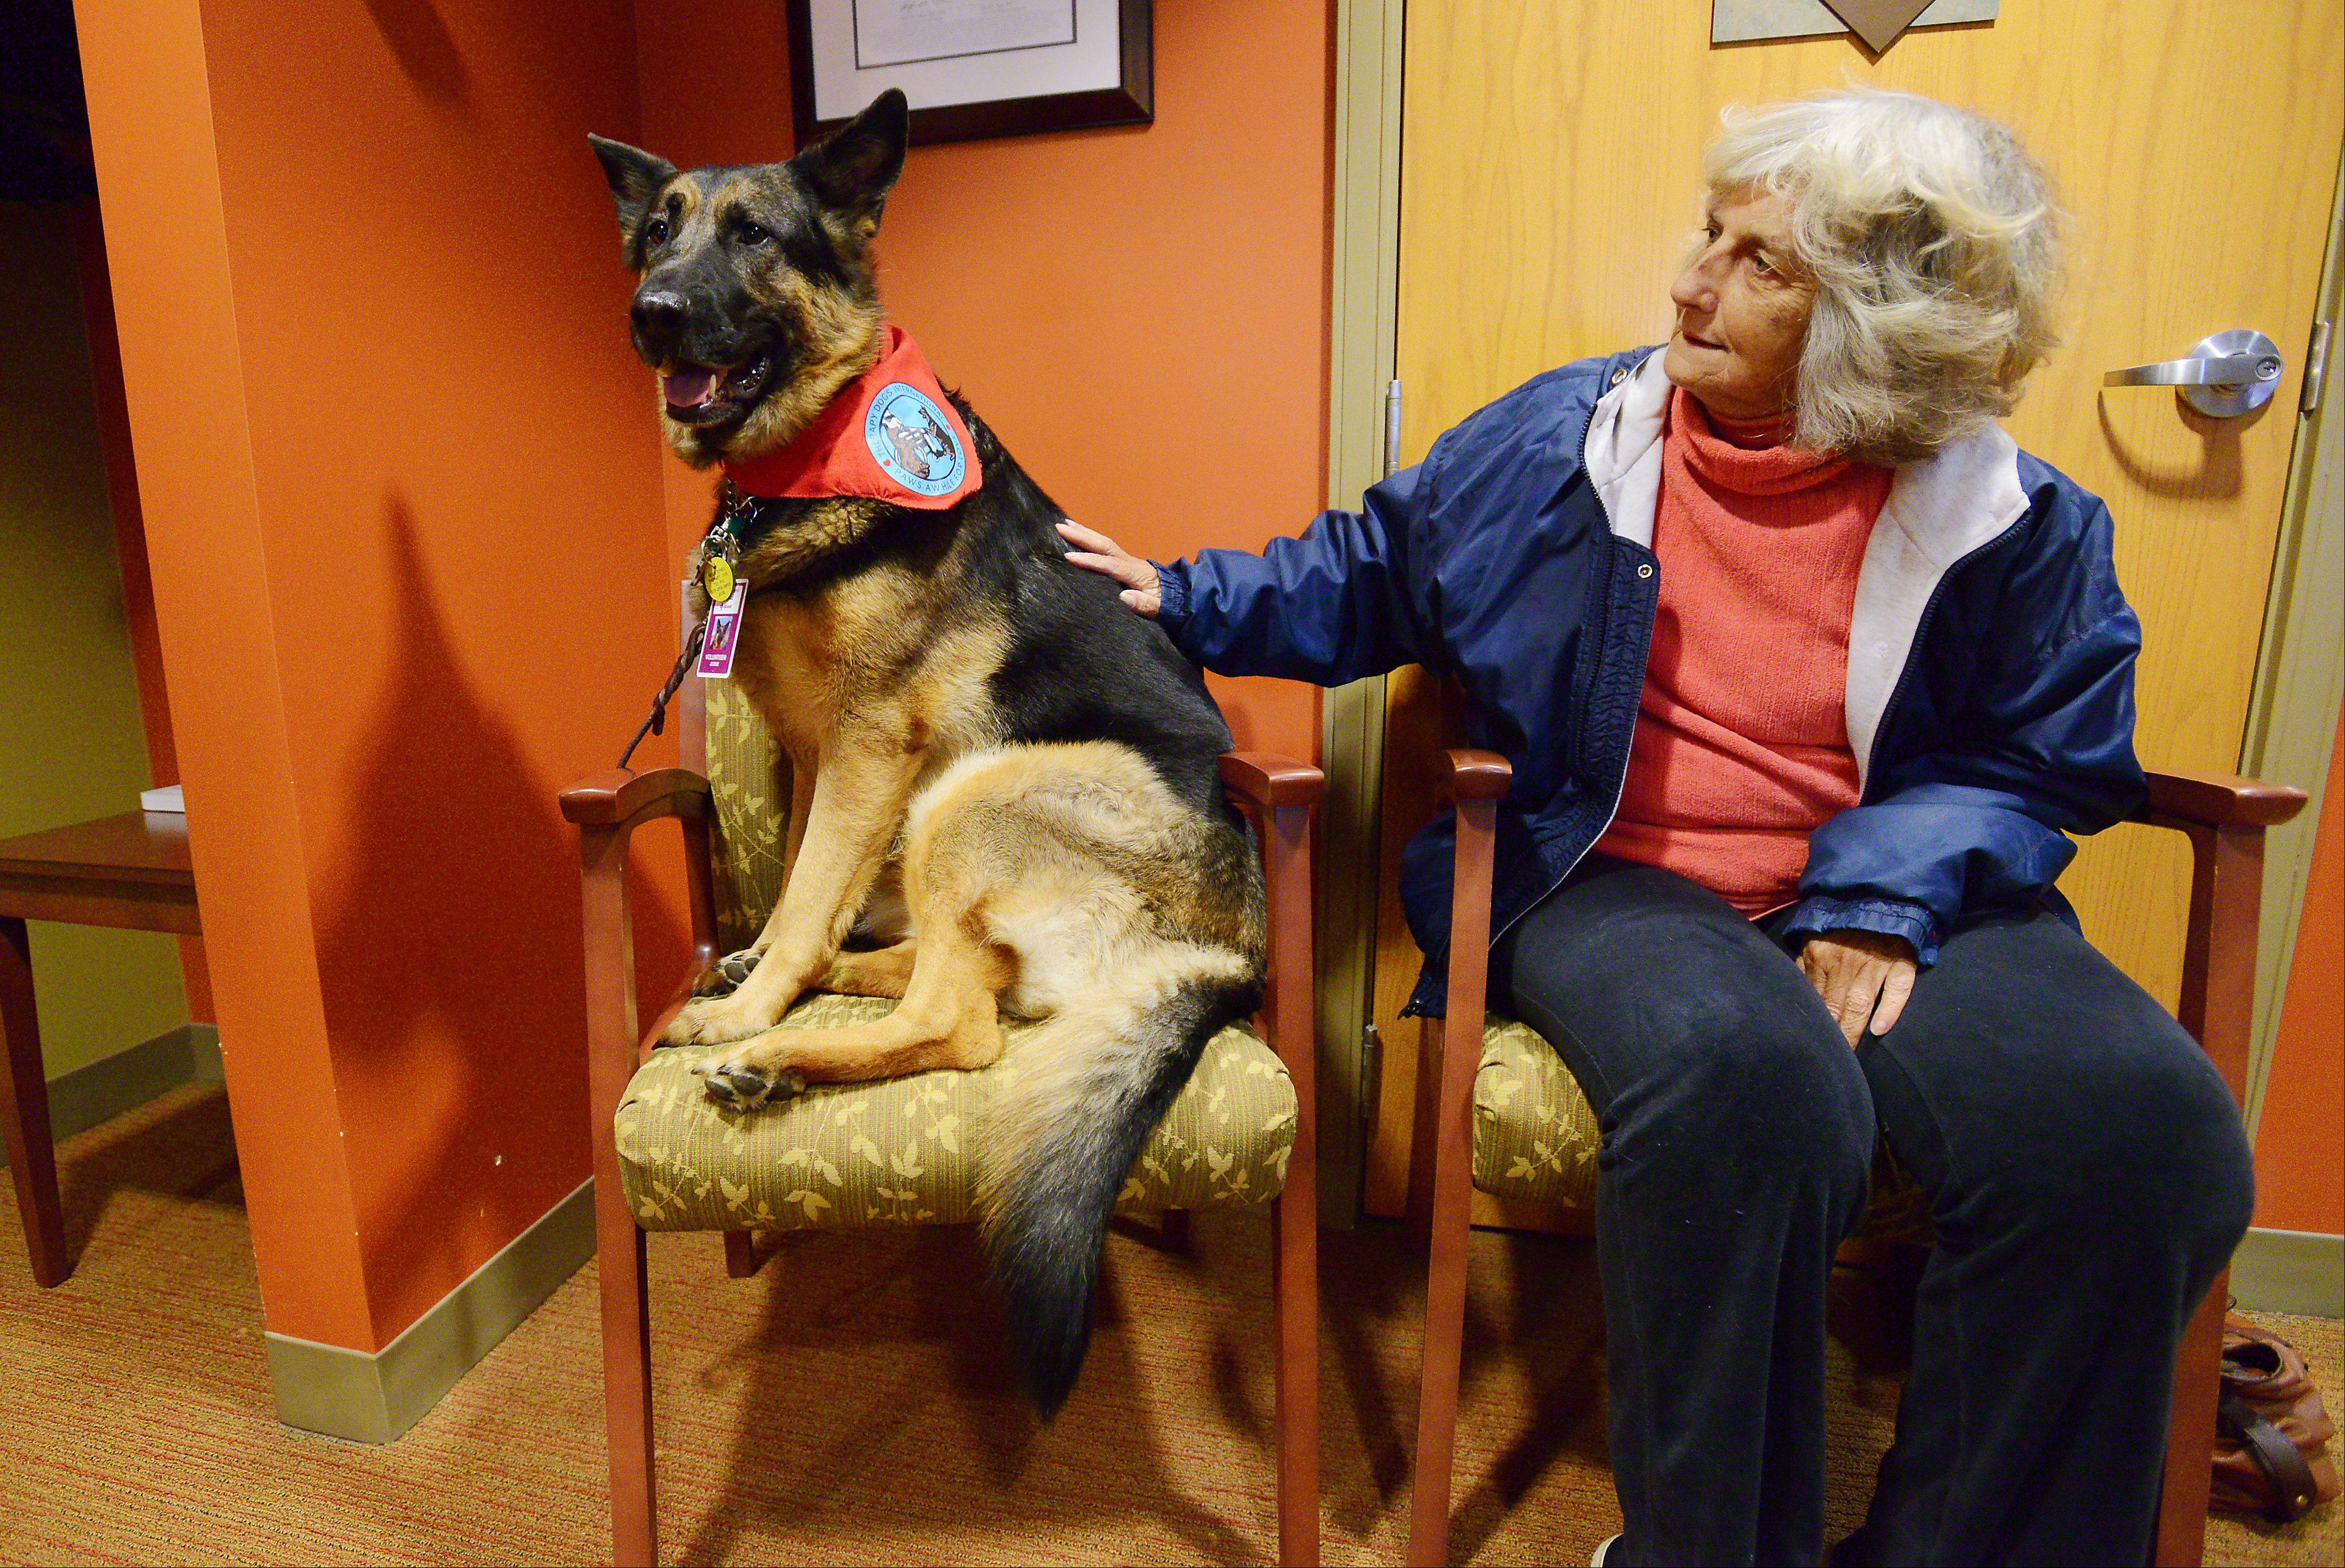 Jessie visits with Patti Saylor of Round Lake Beach as she waits for treatment. He is trained to jump onto chairs so patients don't have to reach down to pet him.